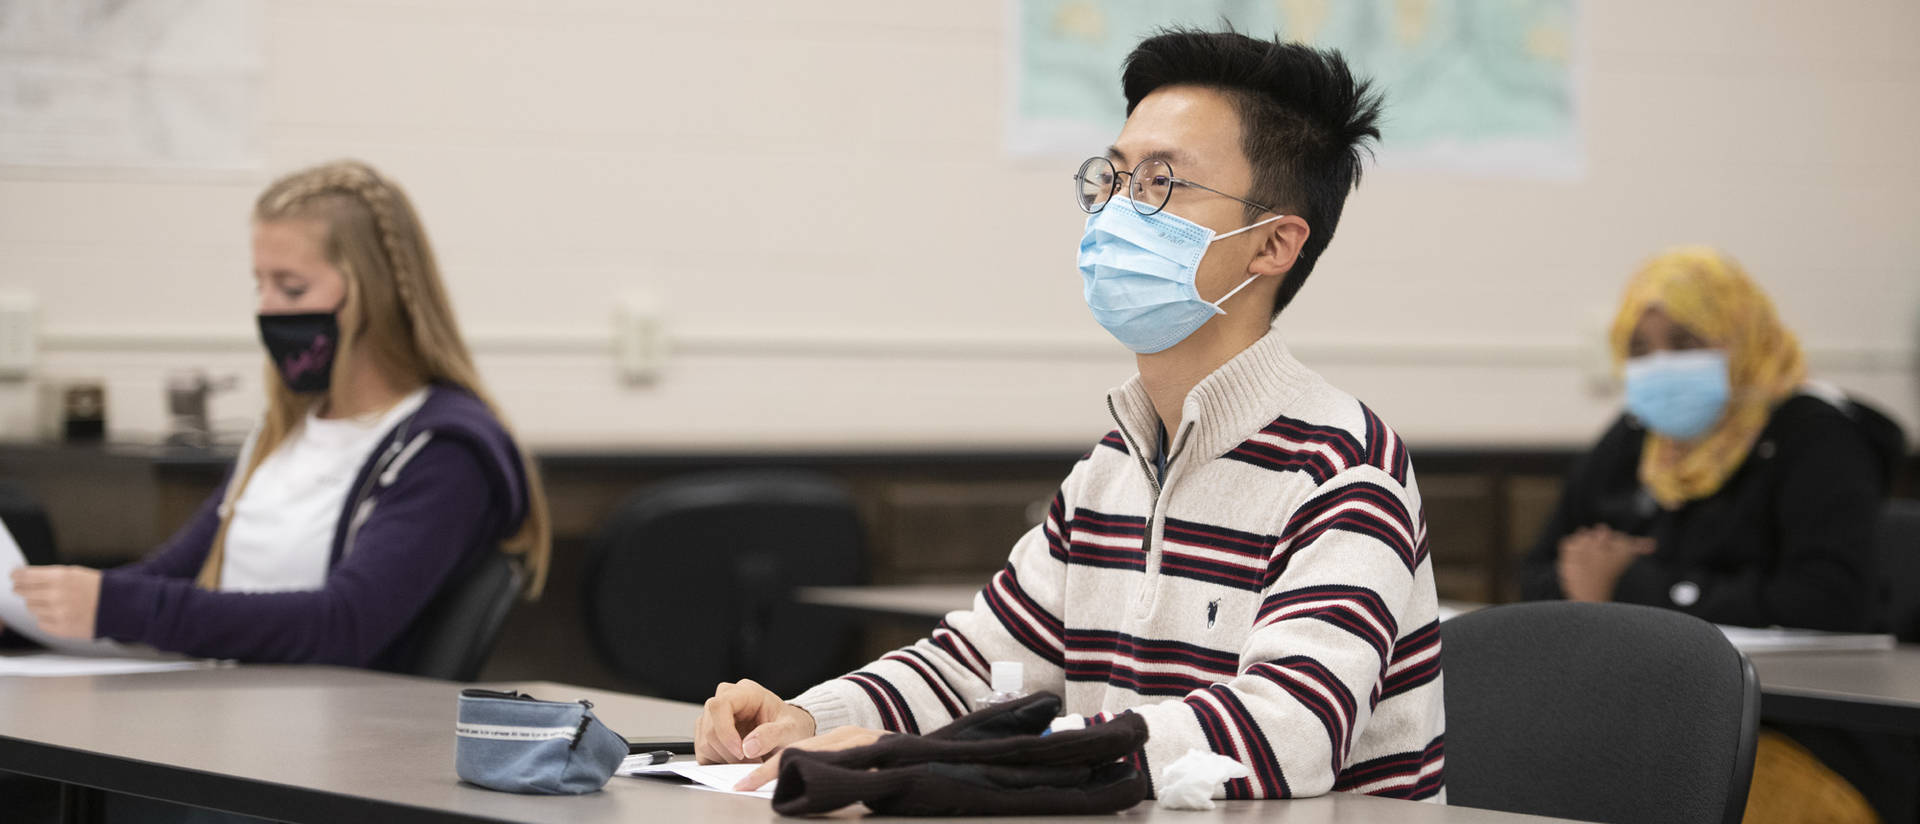 Student in mask engaged in class